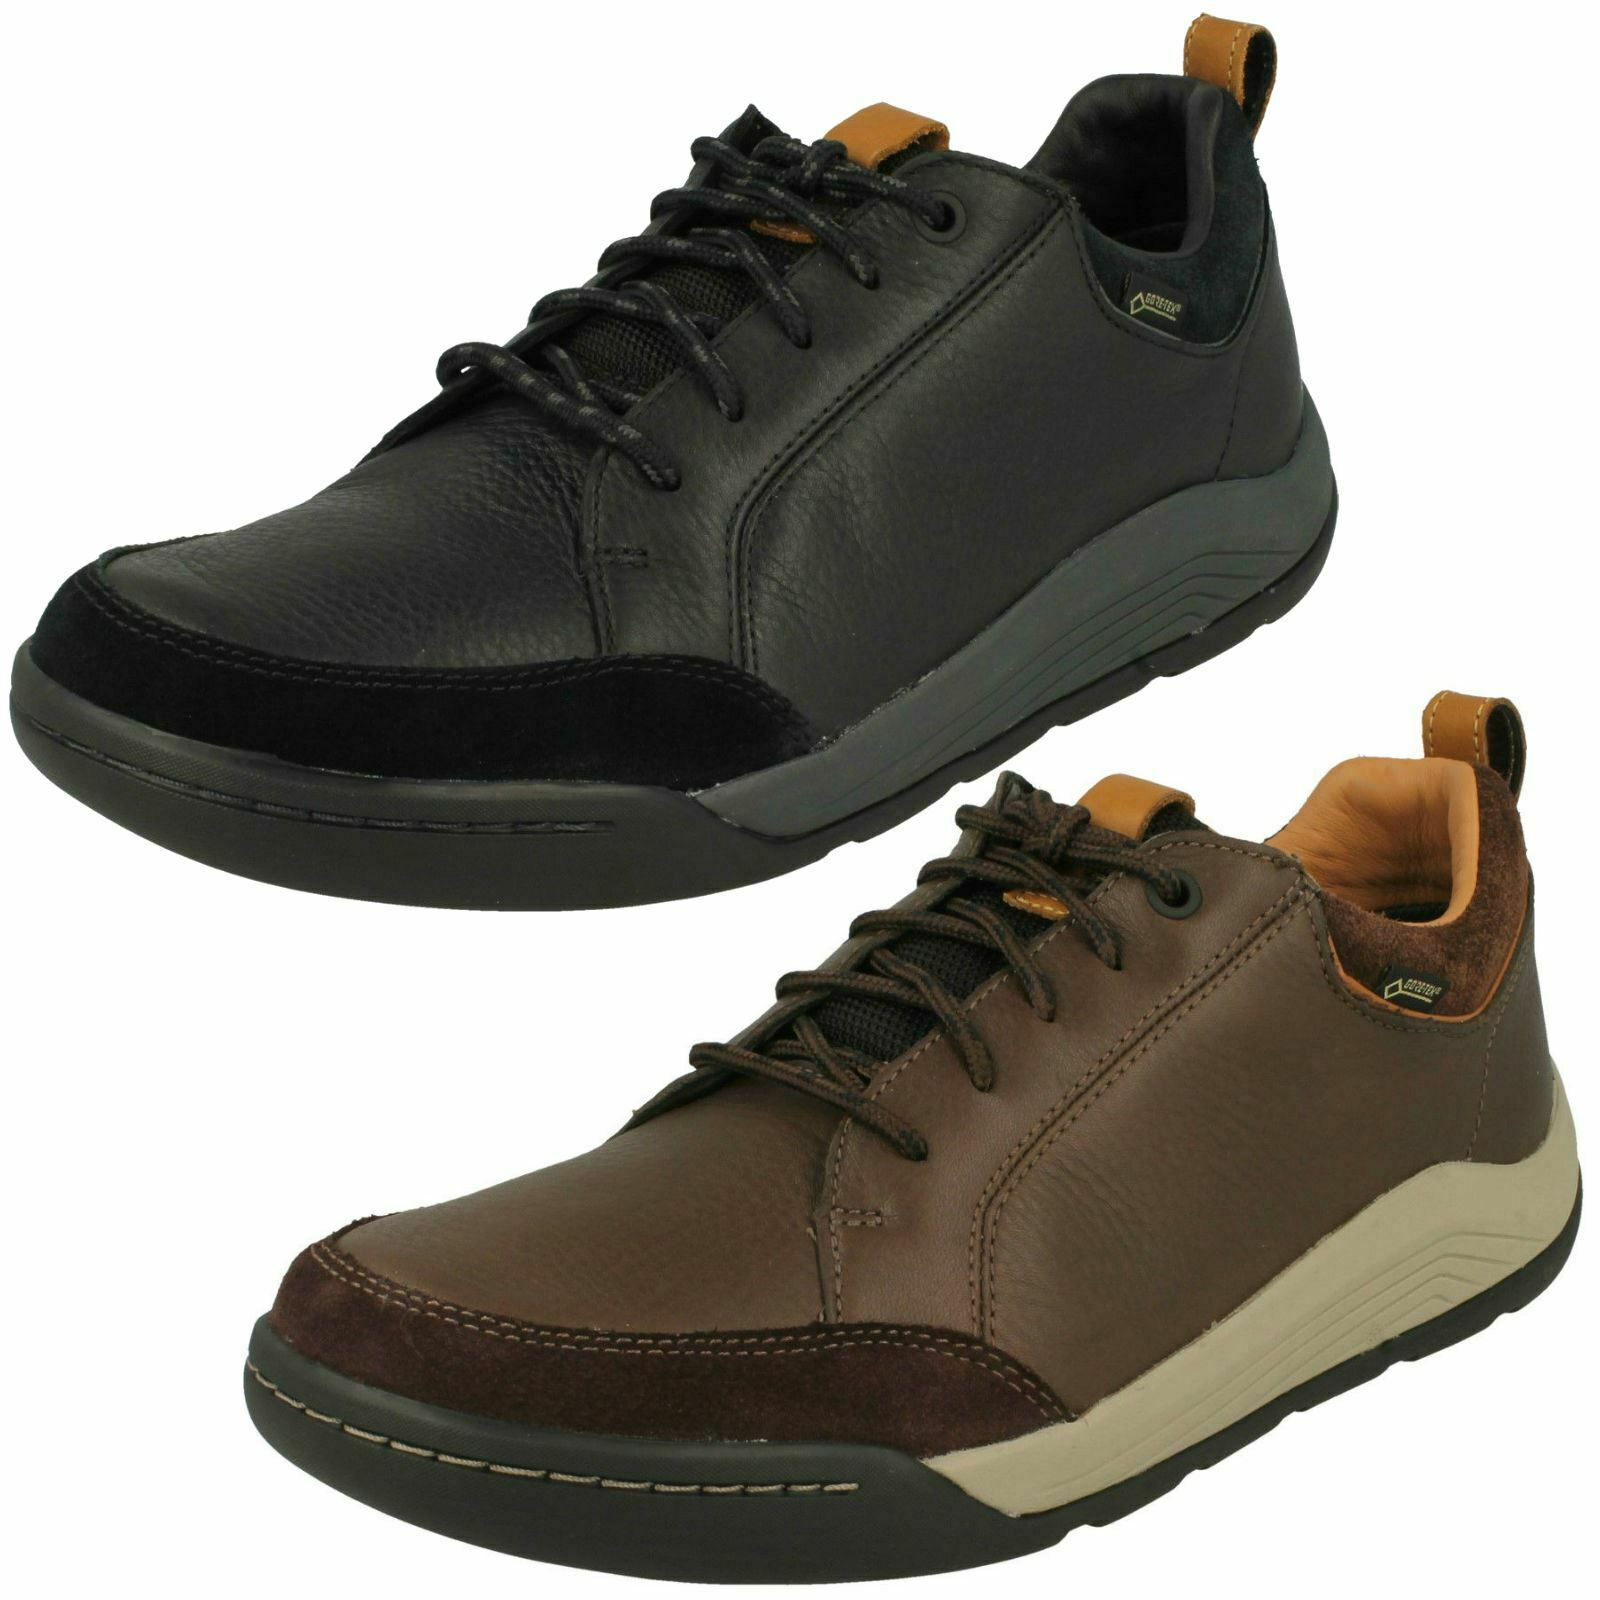 Mens Clarks Casual Lace Up Leather & Textile Gore-Tex shoes Ashcombe Bay GTX